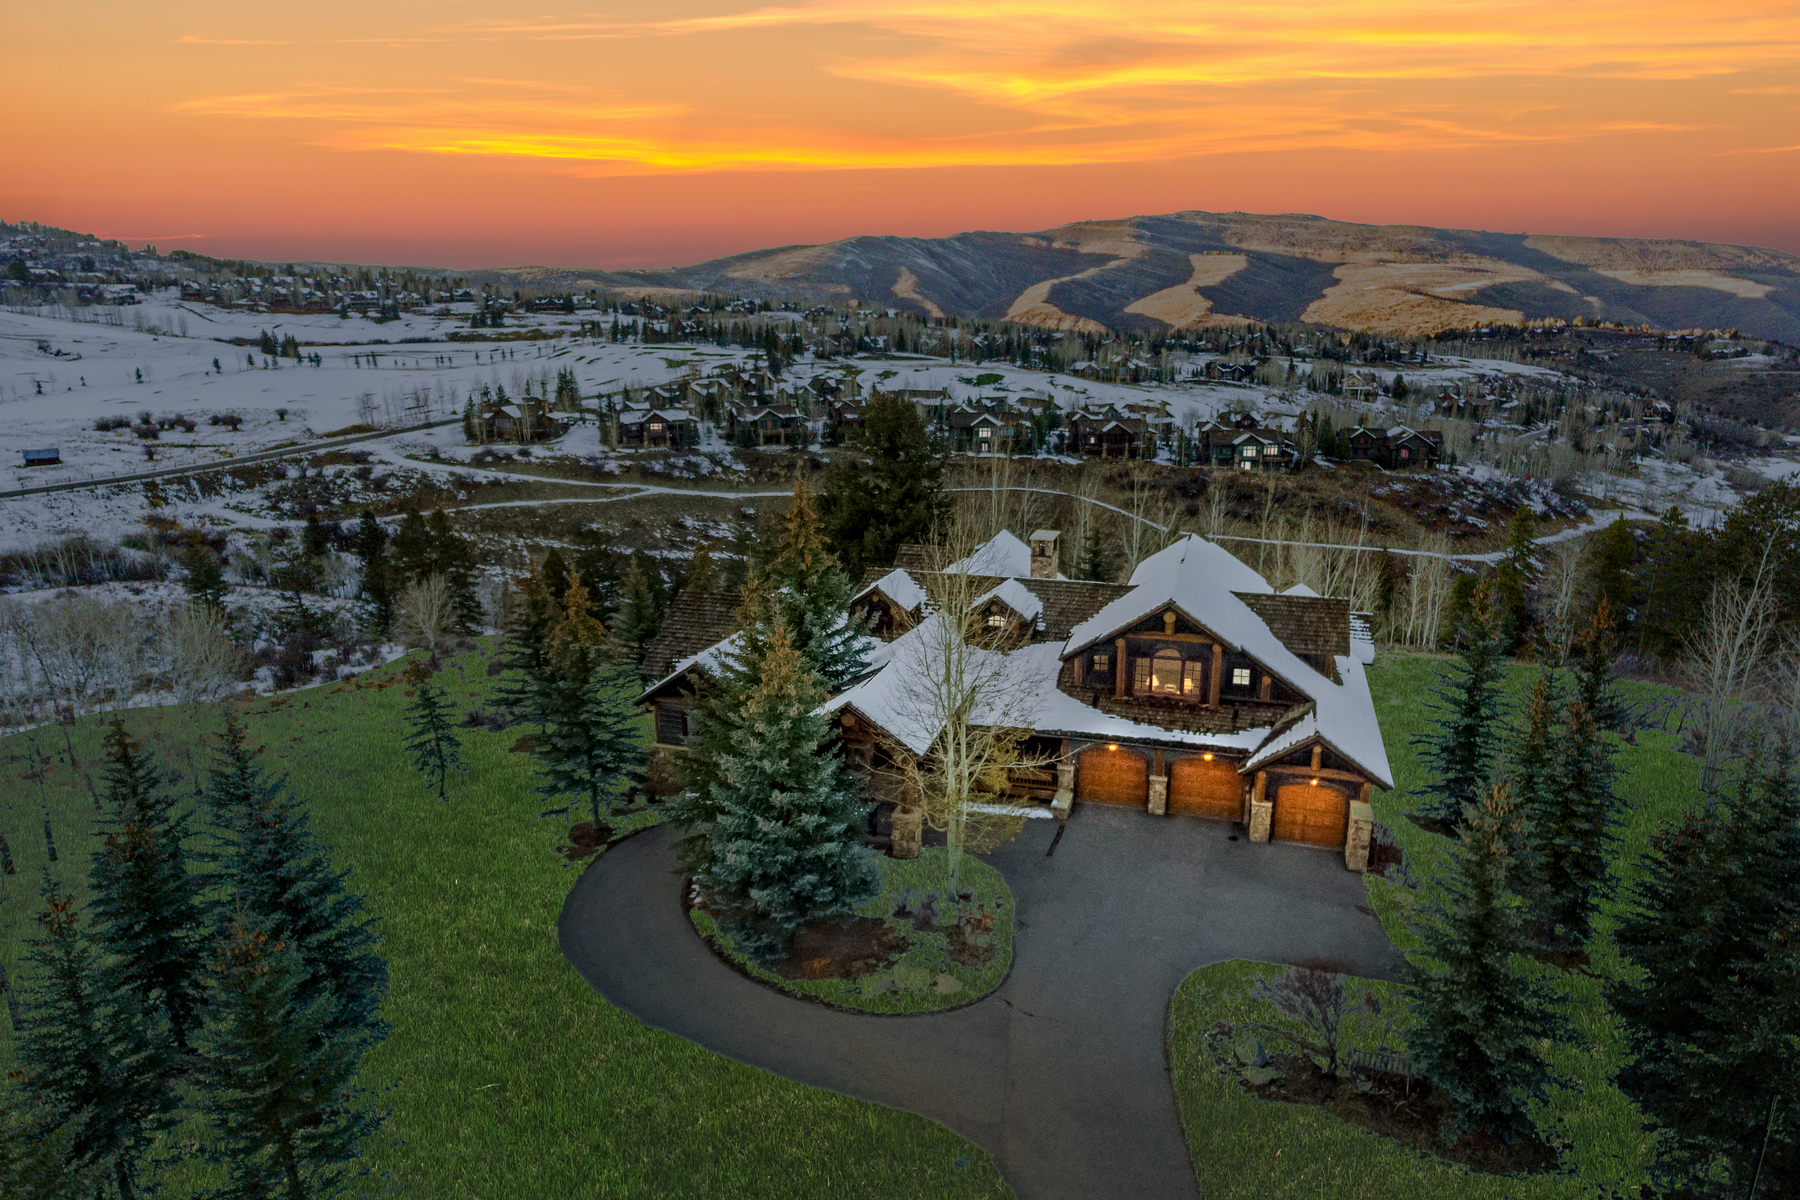 Single Family Home for Active at Welcome home to the perfect balance of timeless luxury and classic comfort 105 Bear Cat Point Edwards, Colorado 81632 United States